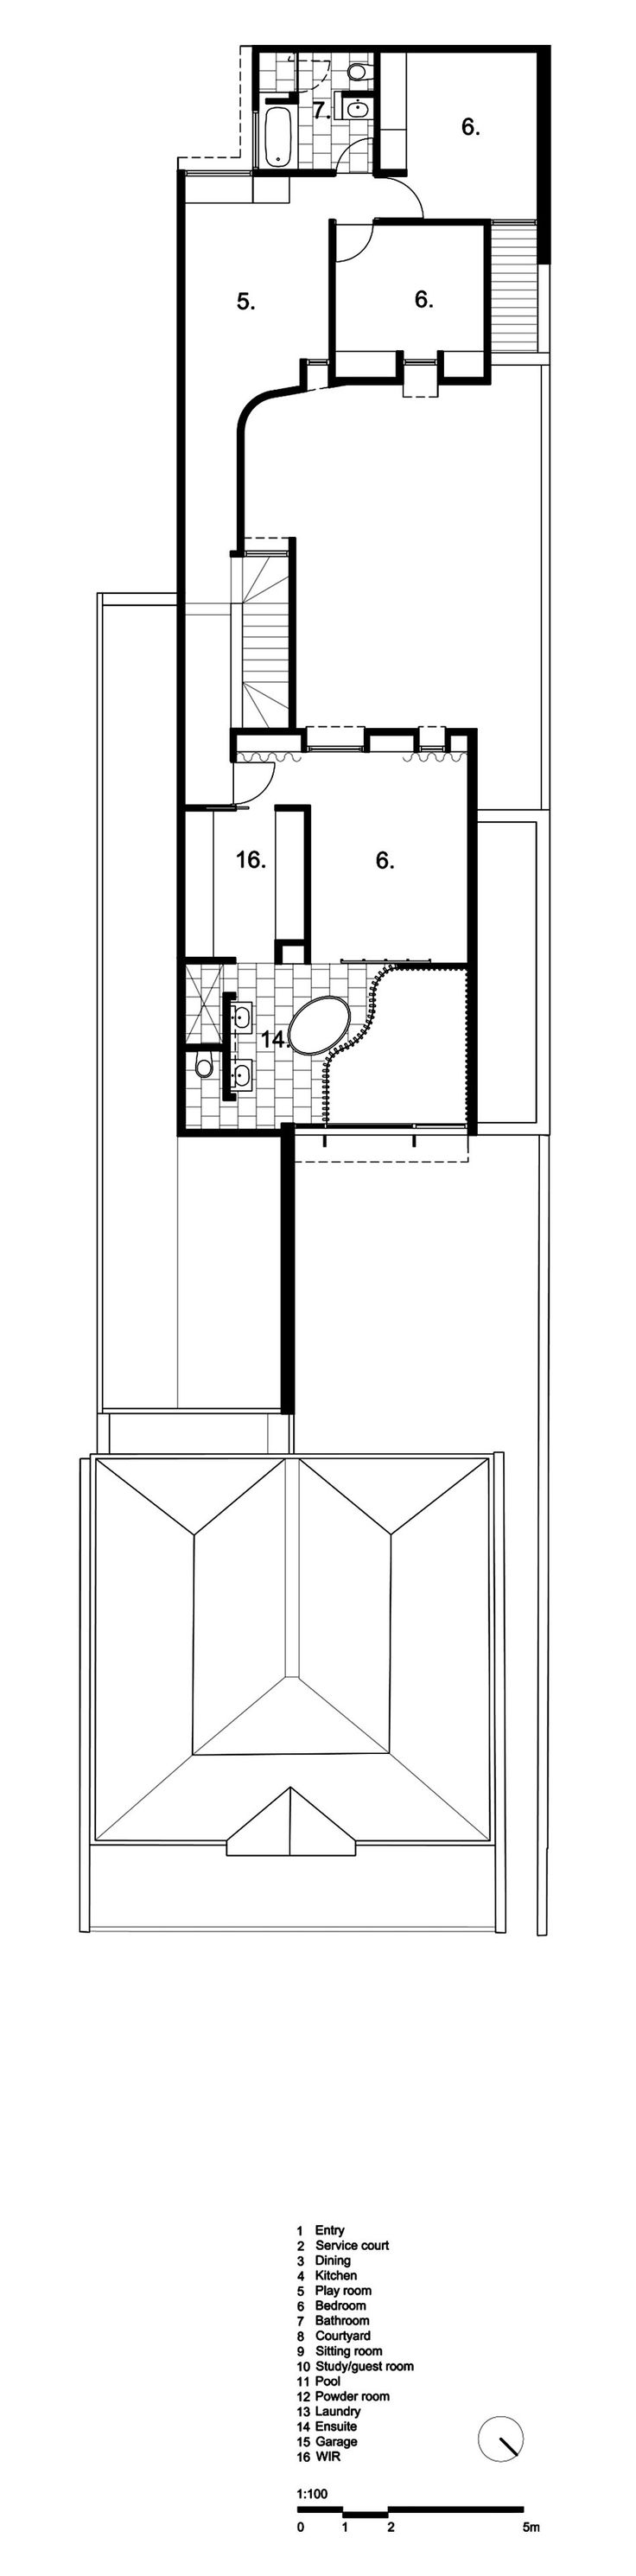 507 best plans to inspire images on pinterest house floor plans